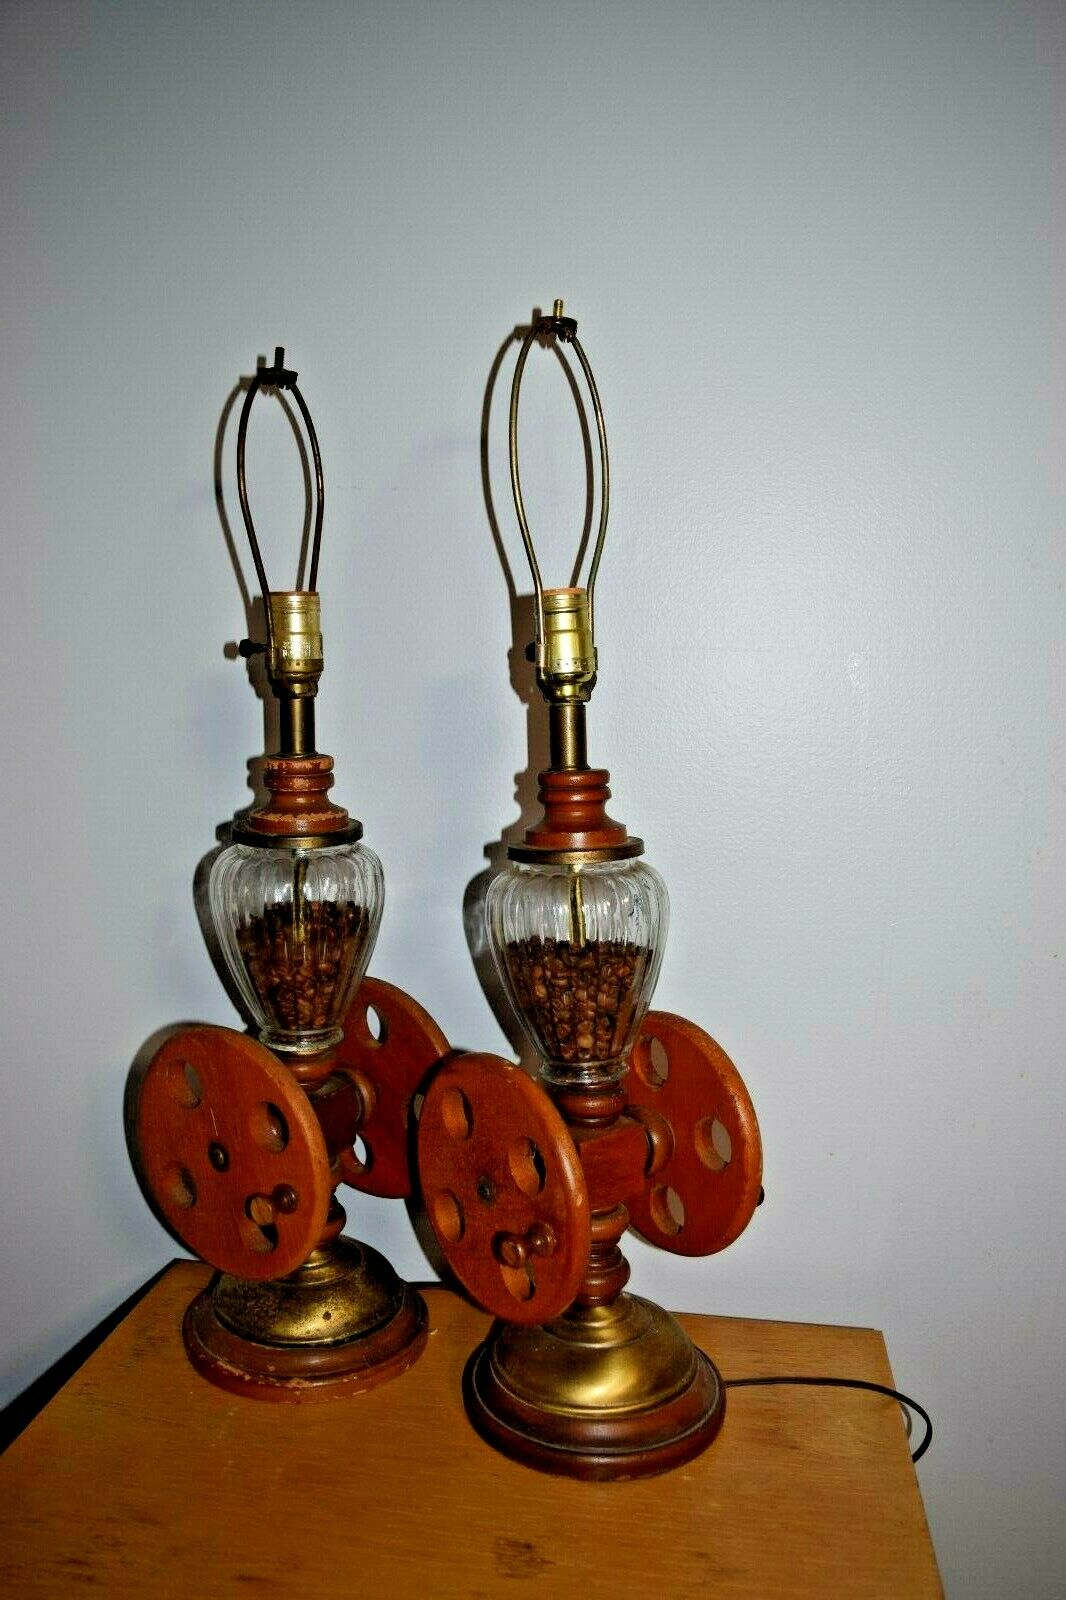 Vintage Pair Wood and glass Coffee Grinder table lamp with coffee beans inside.